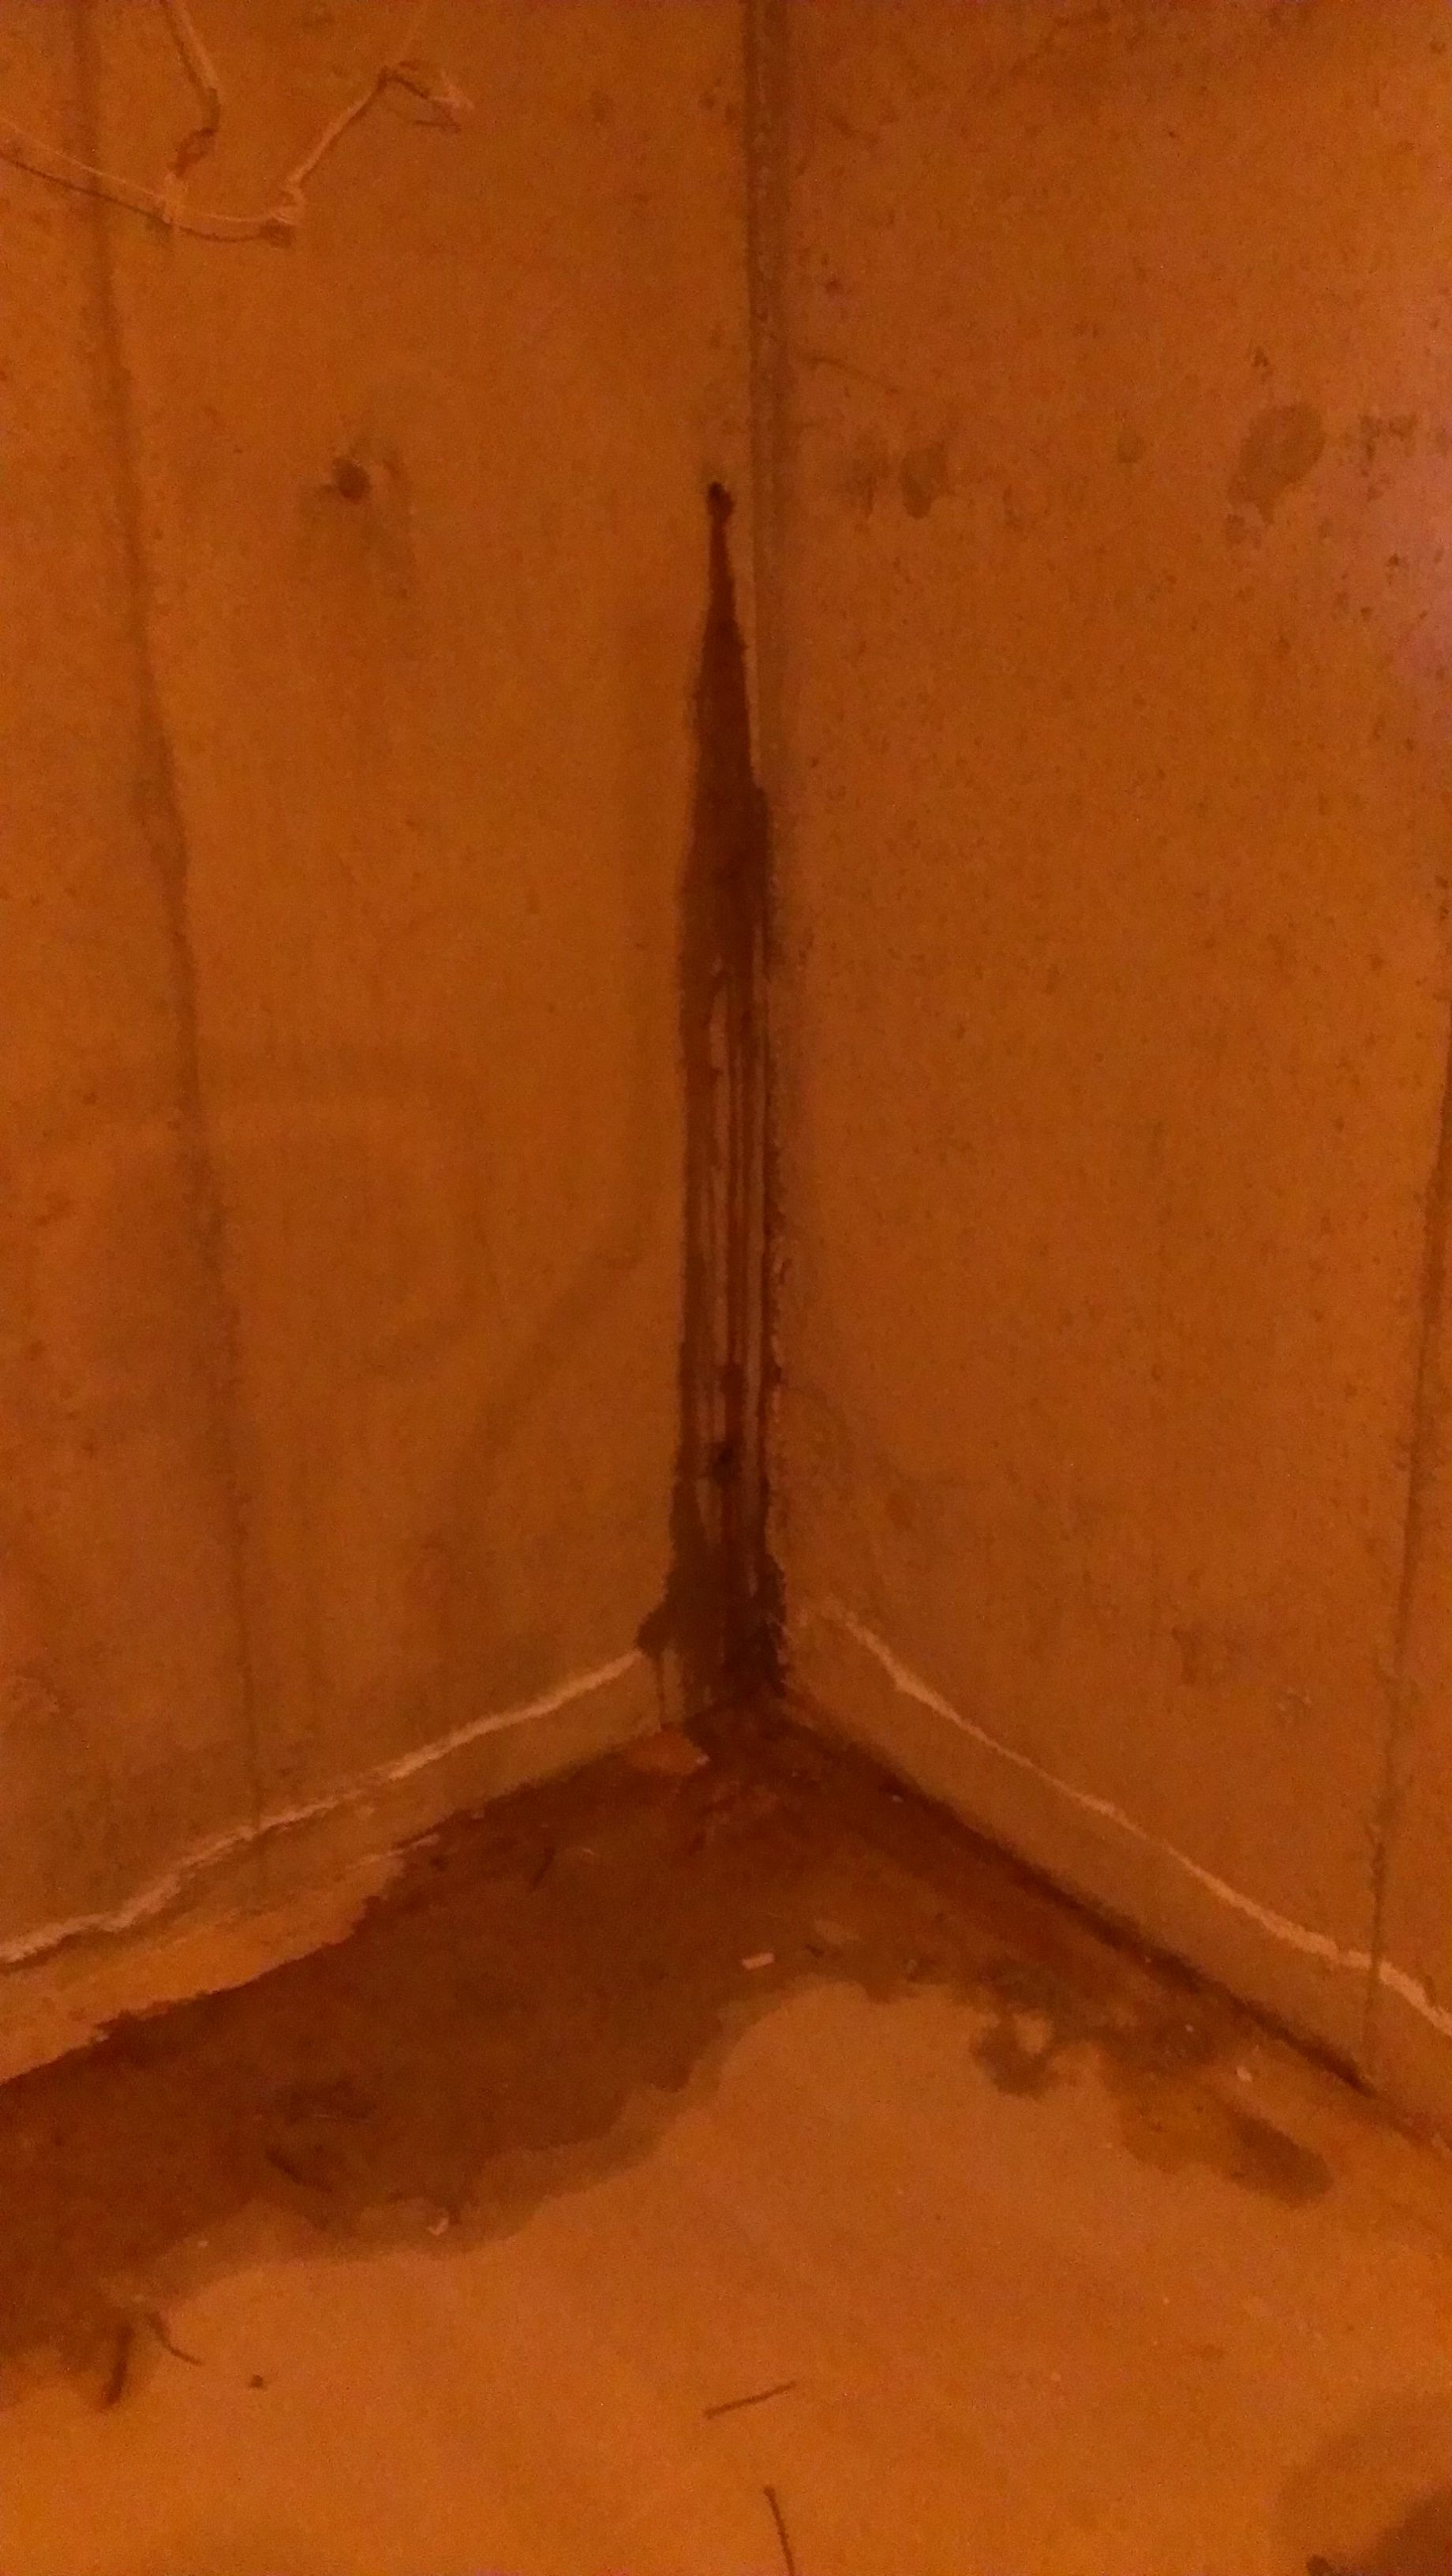 How To Waterproof Leaky Tie Rods In Basement Walls Using The - Damp basement walls